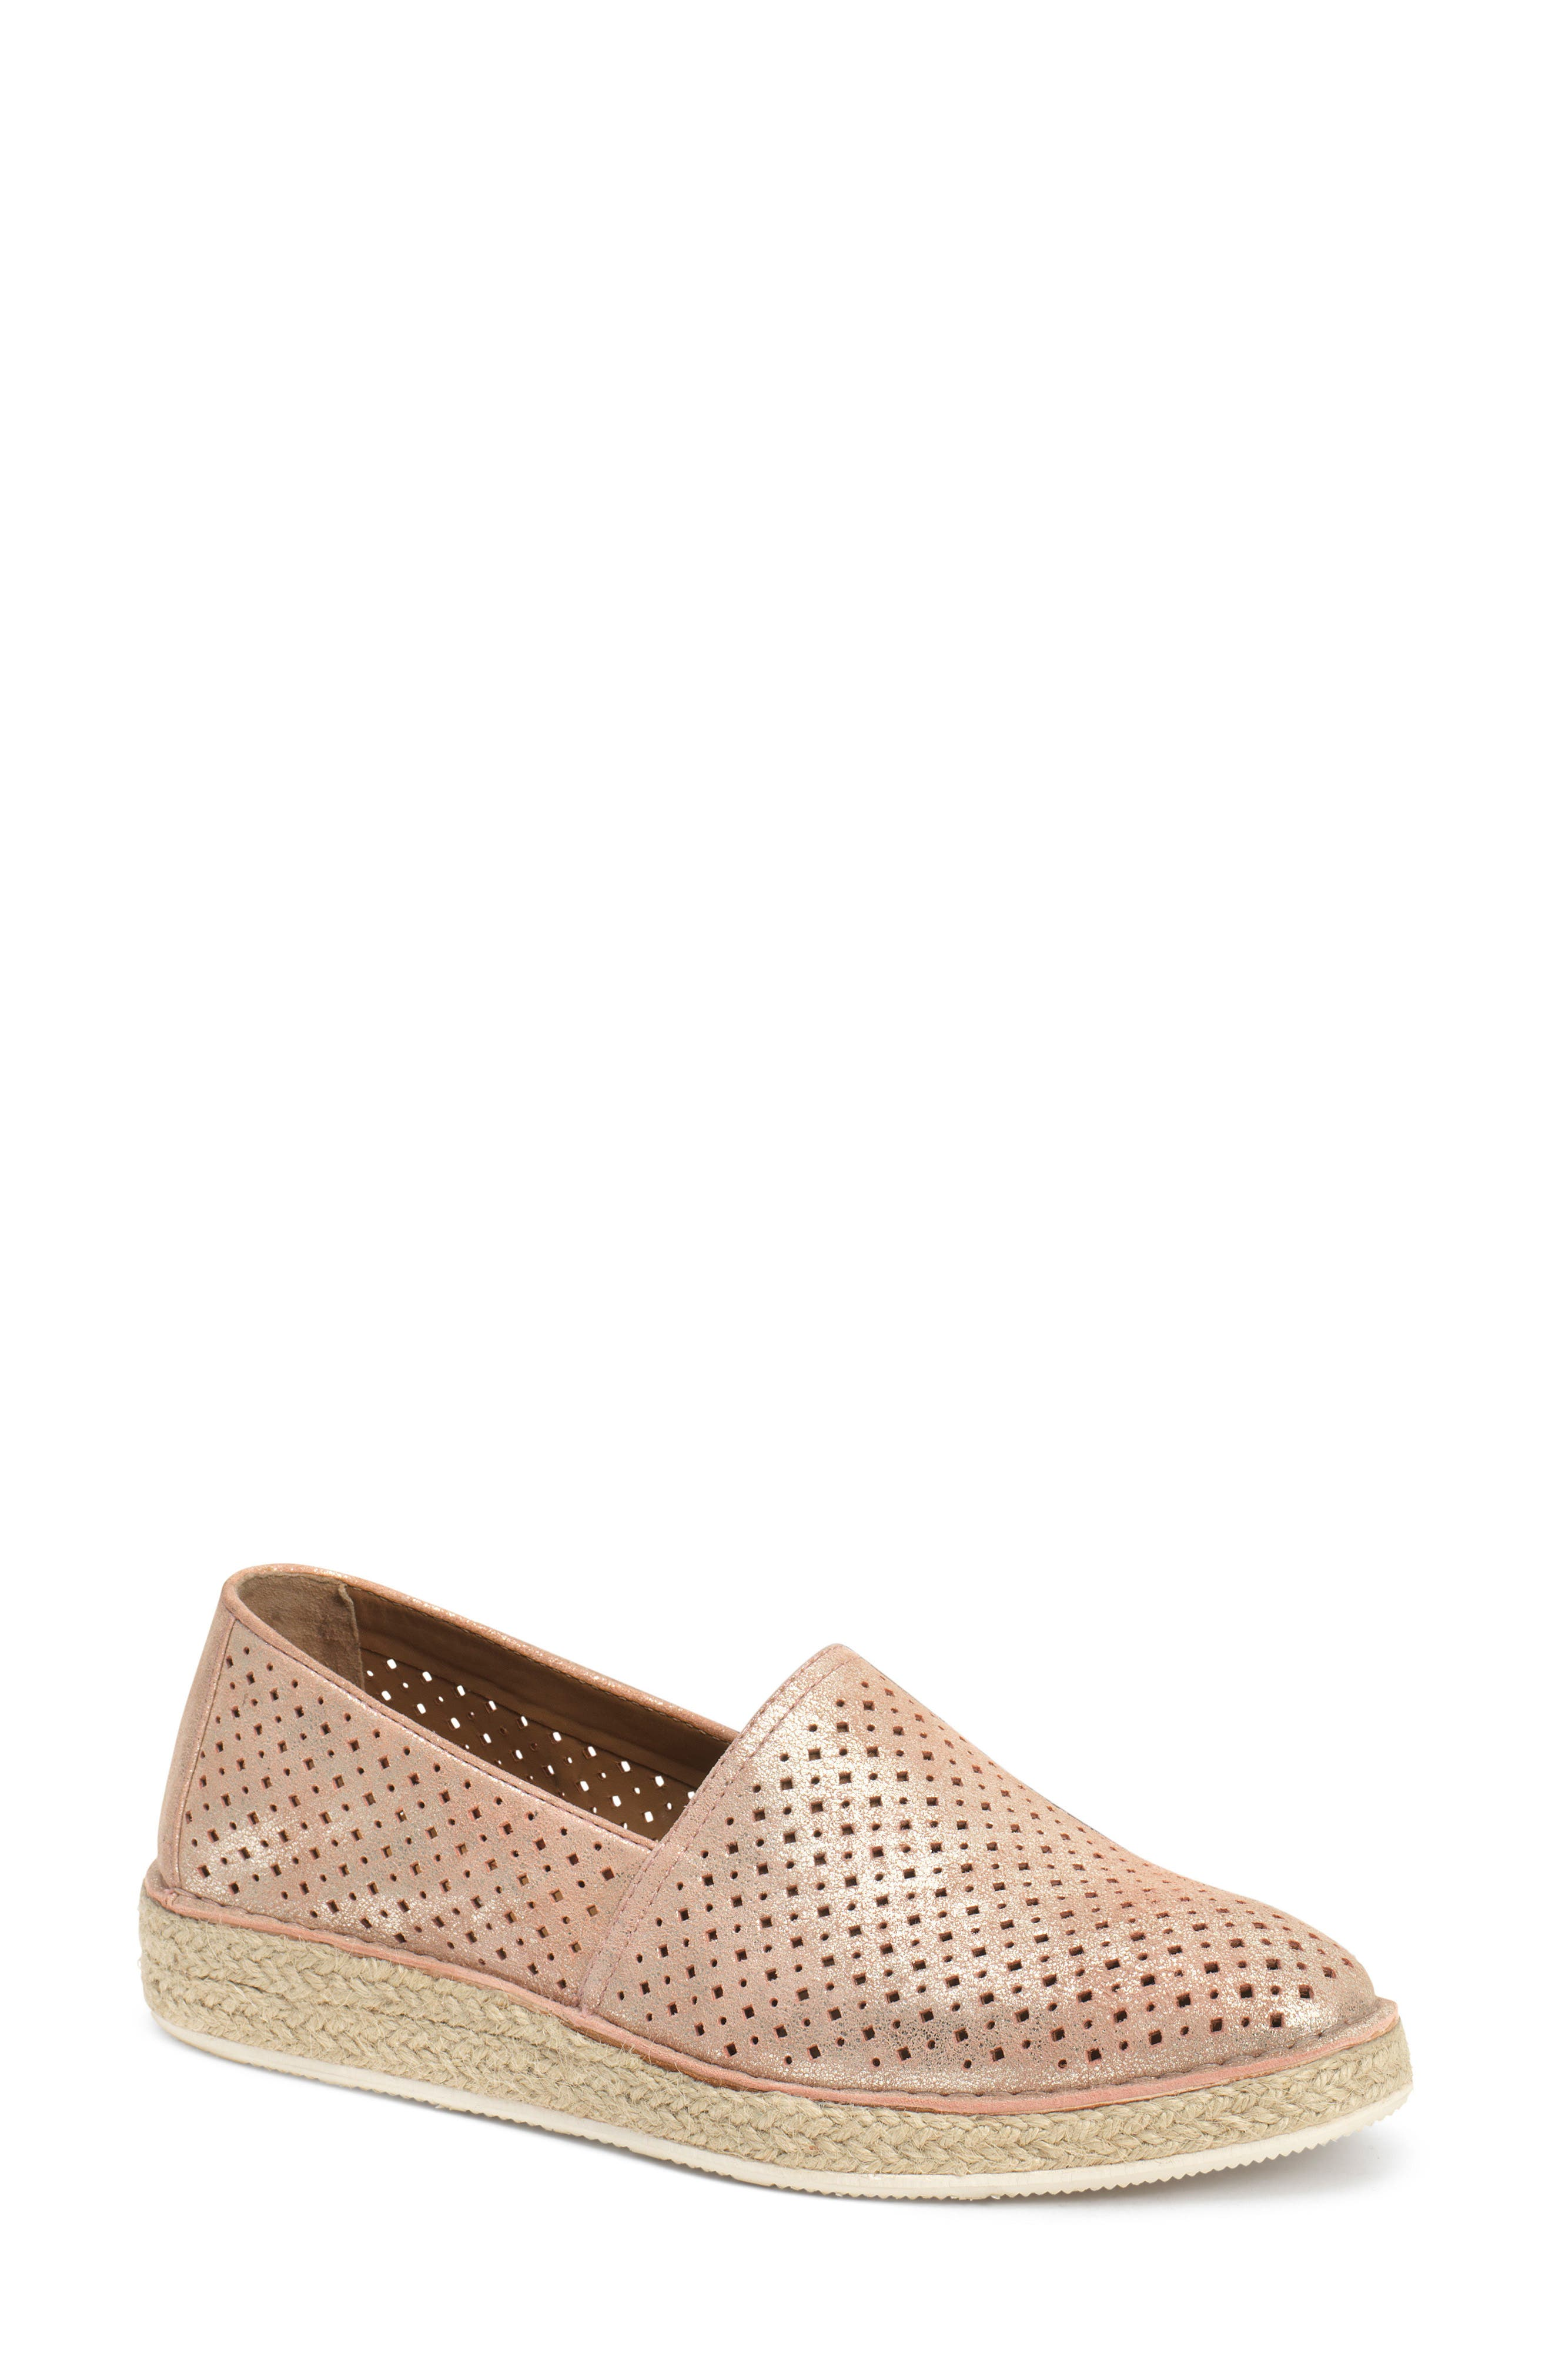 Paige Perforated Flat,                         Main,                         color, Blush Metallic Suede